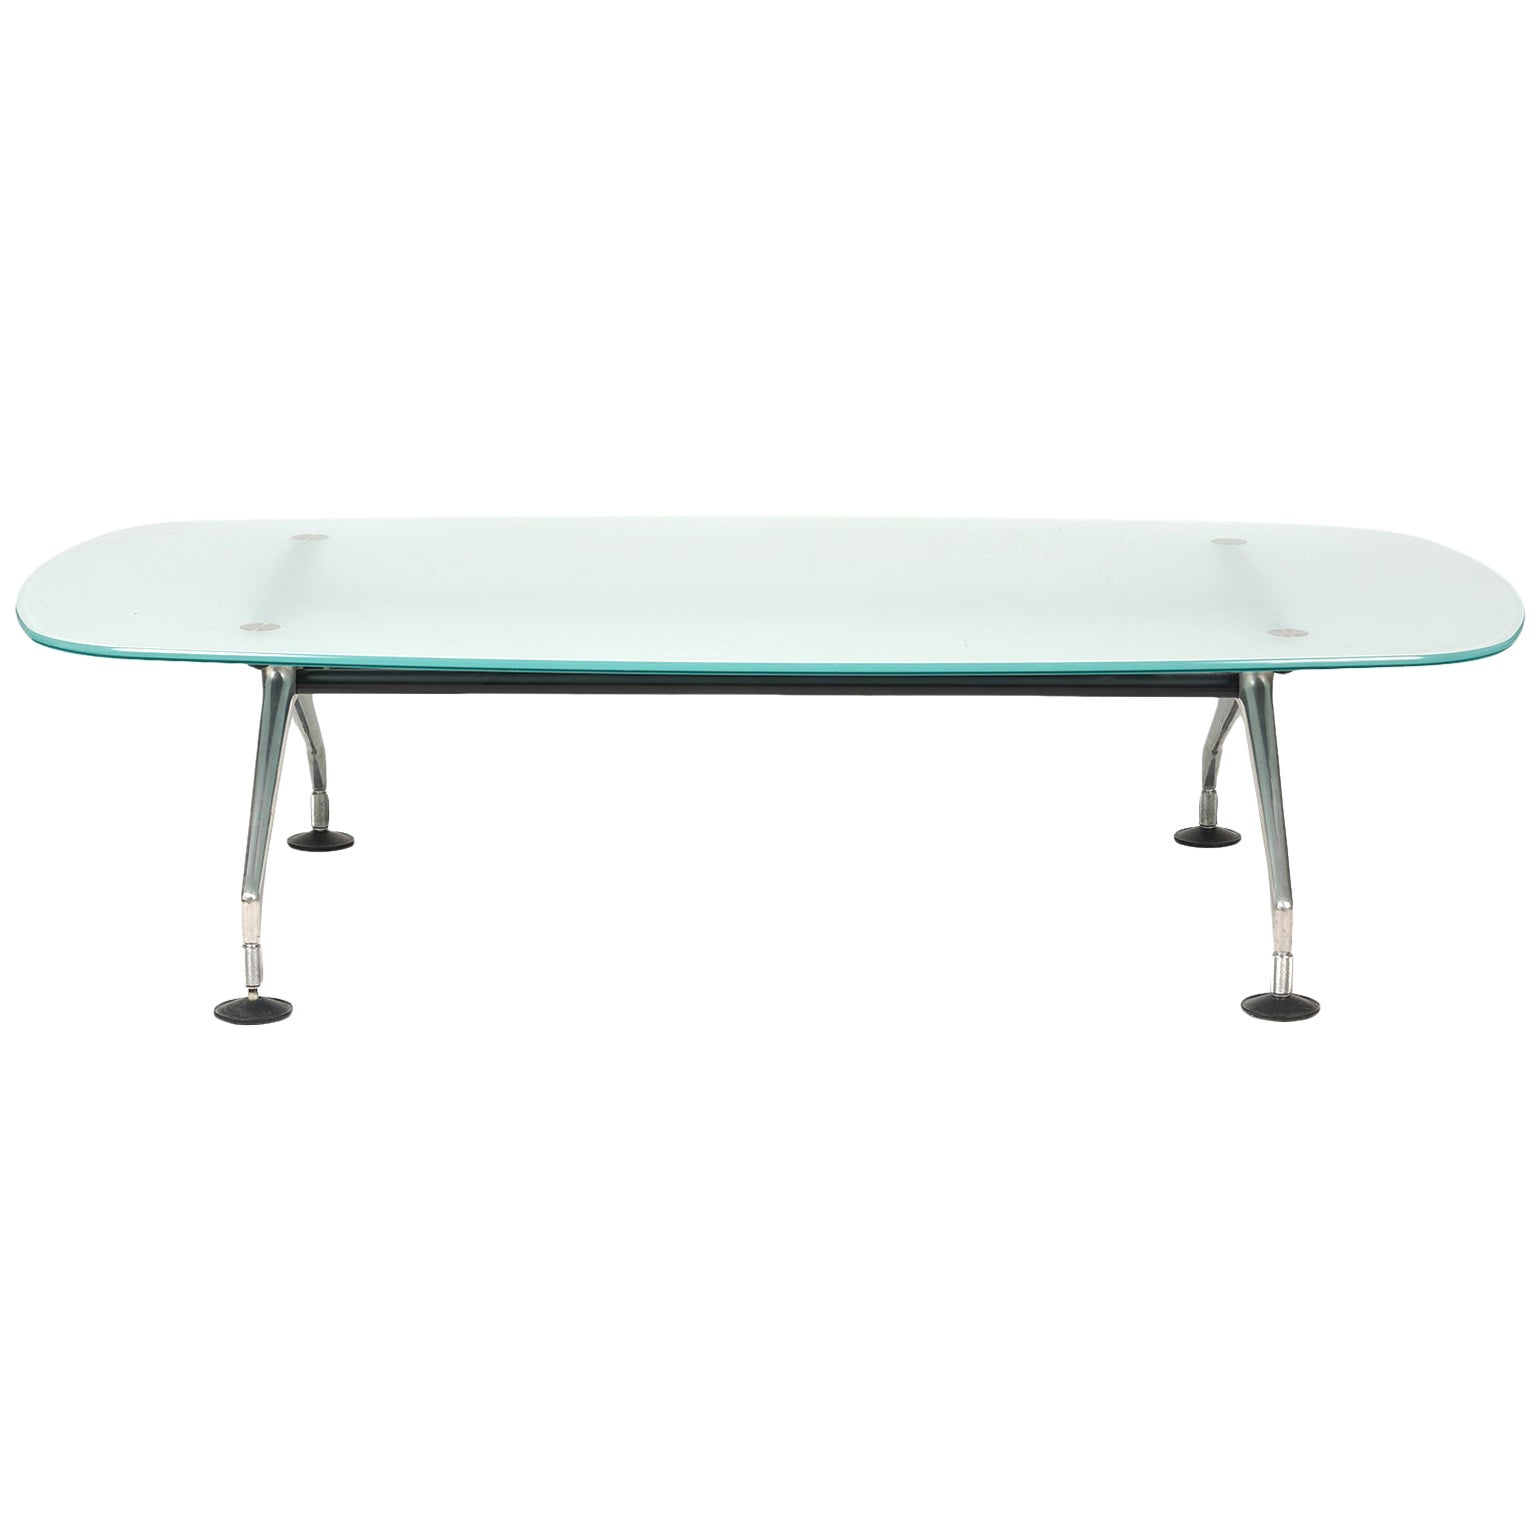 Frosted Glass Top and Brushed Metal Coffee Table by Antonio Citterio for Vitra